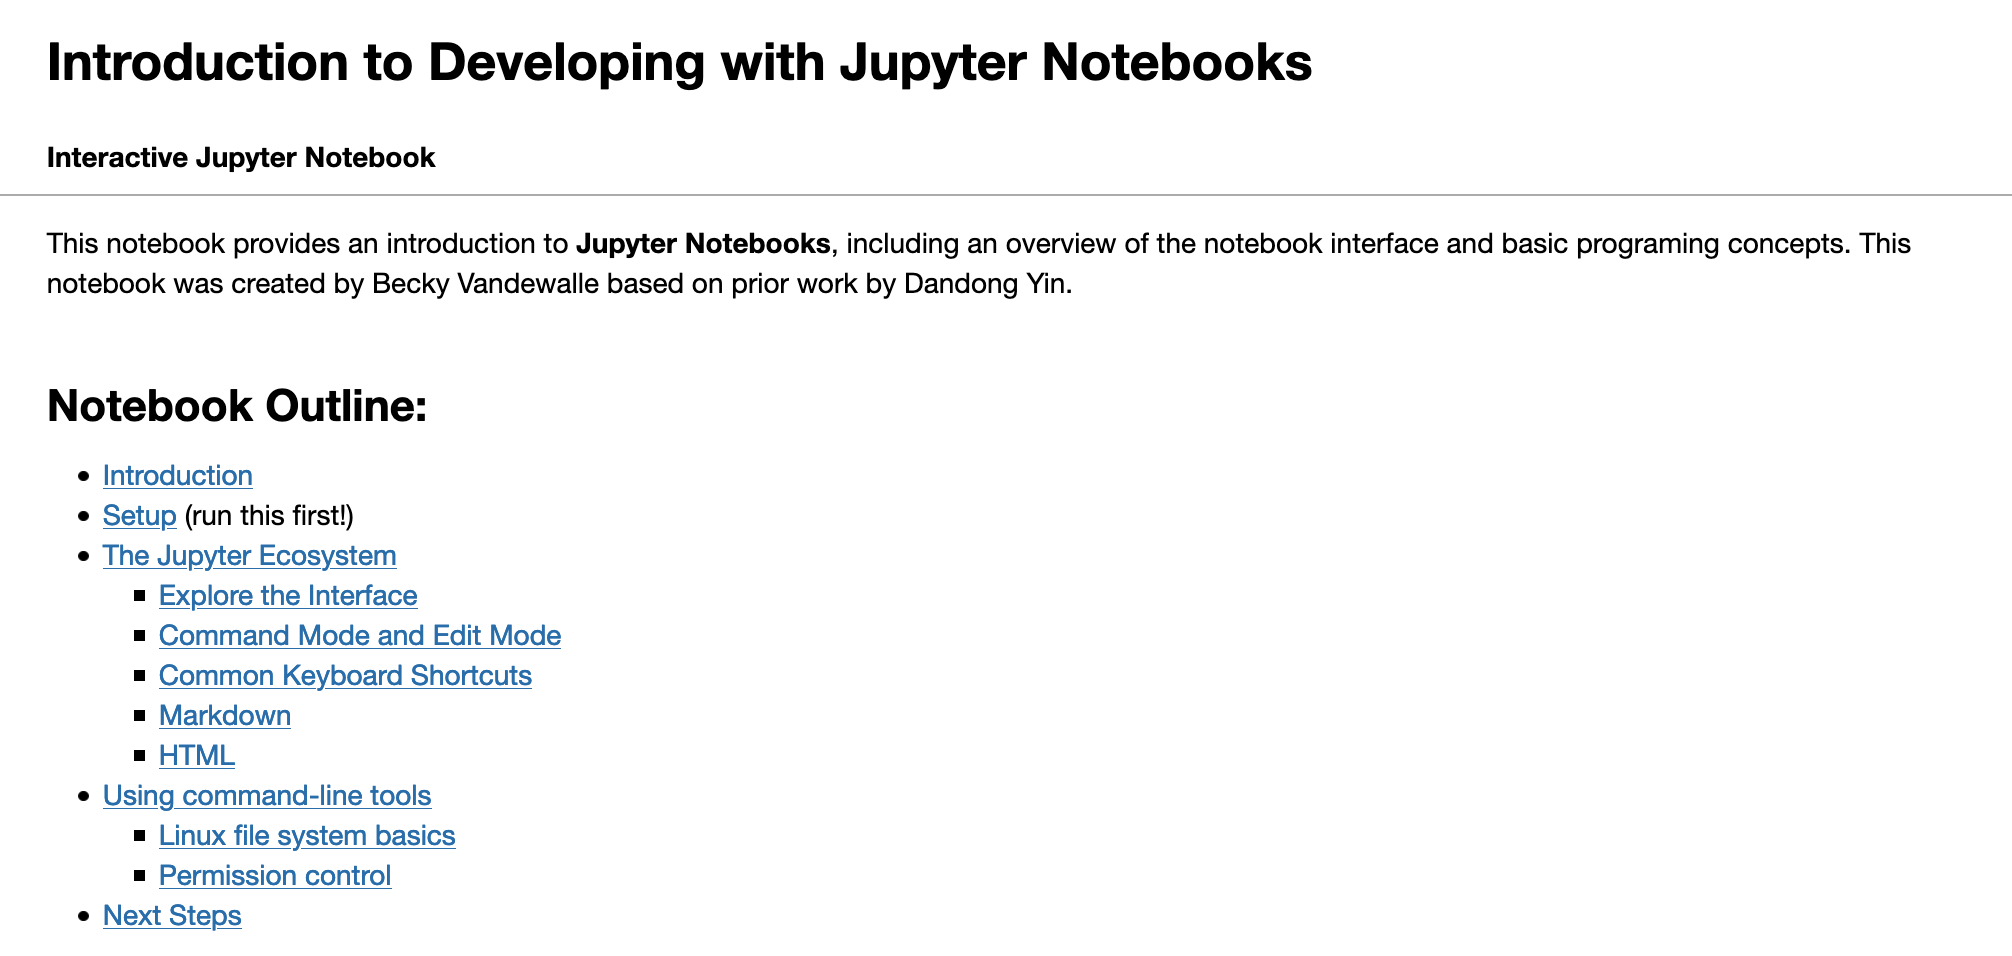 Introduction to Developing with Jupyter Notebooks